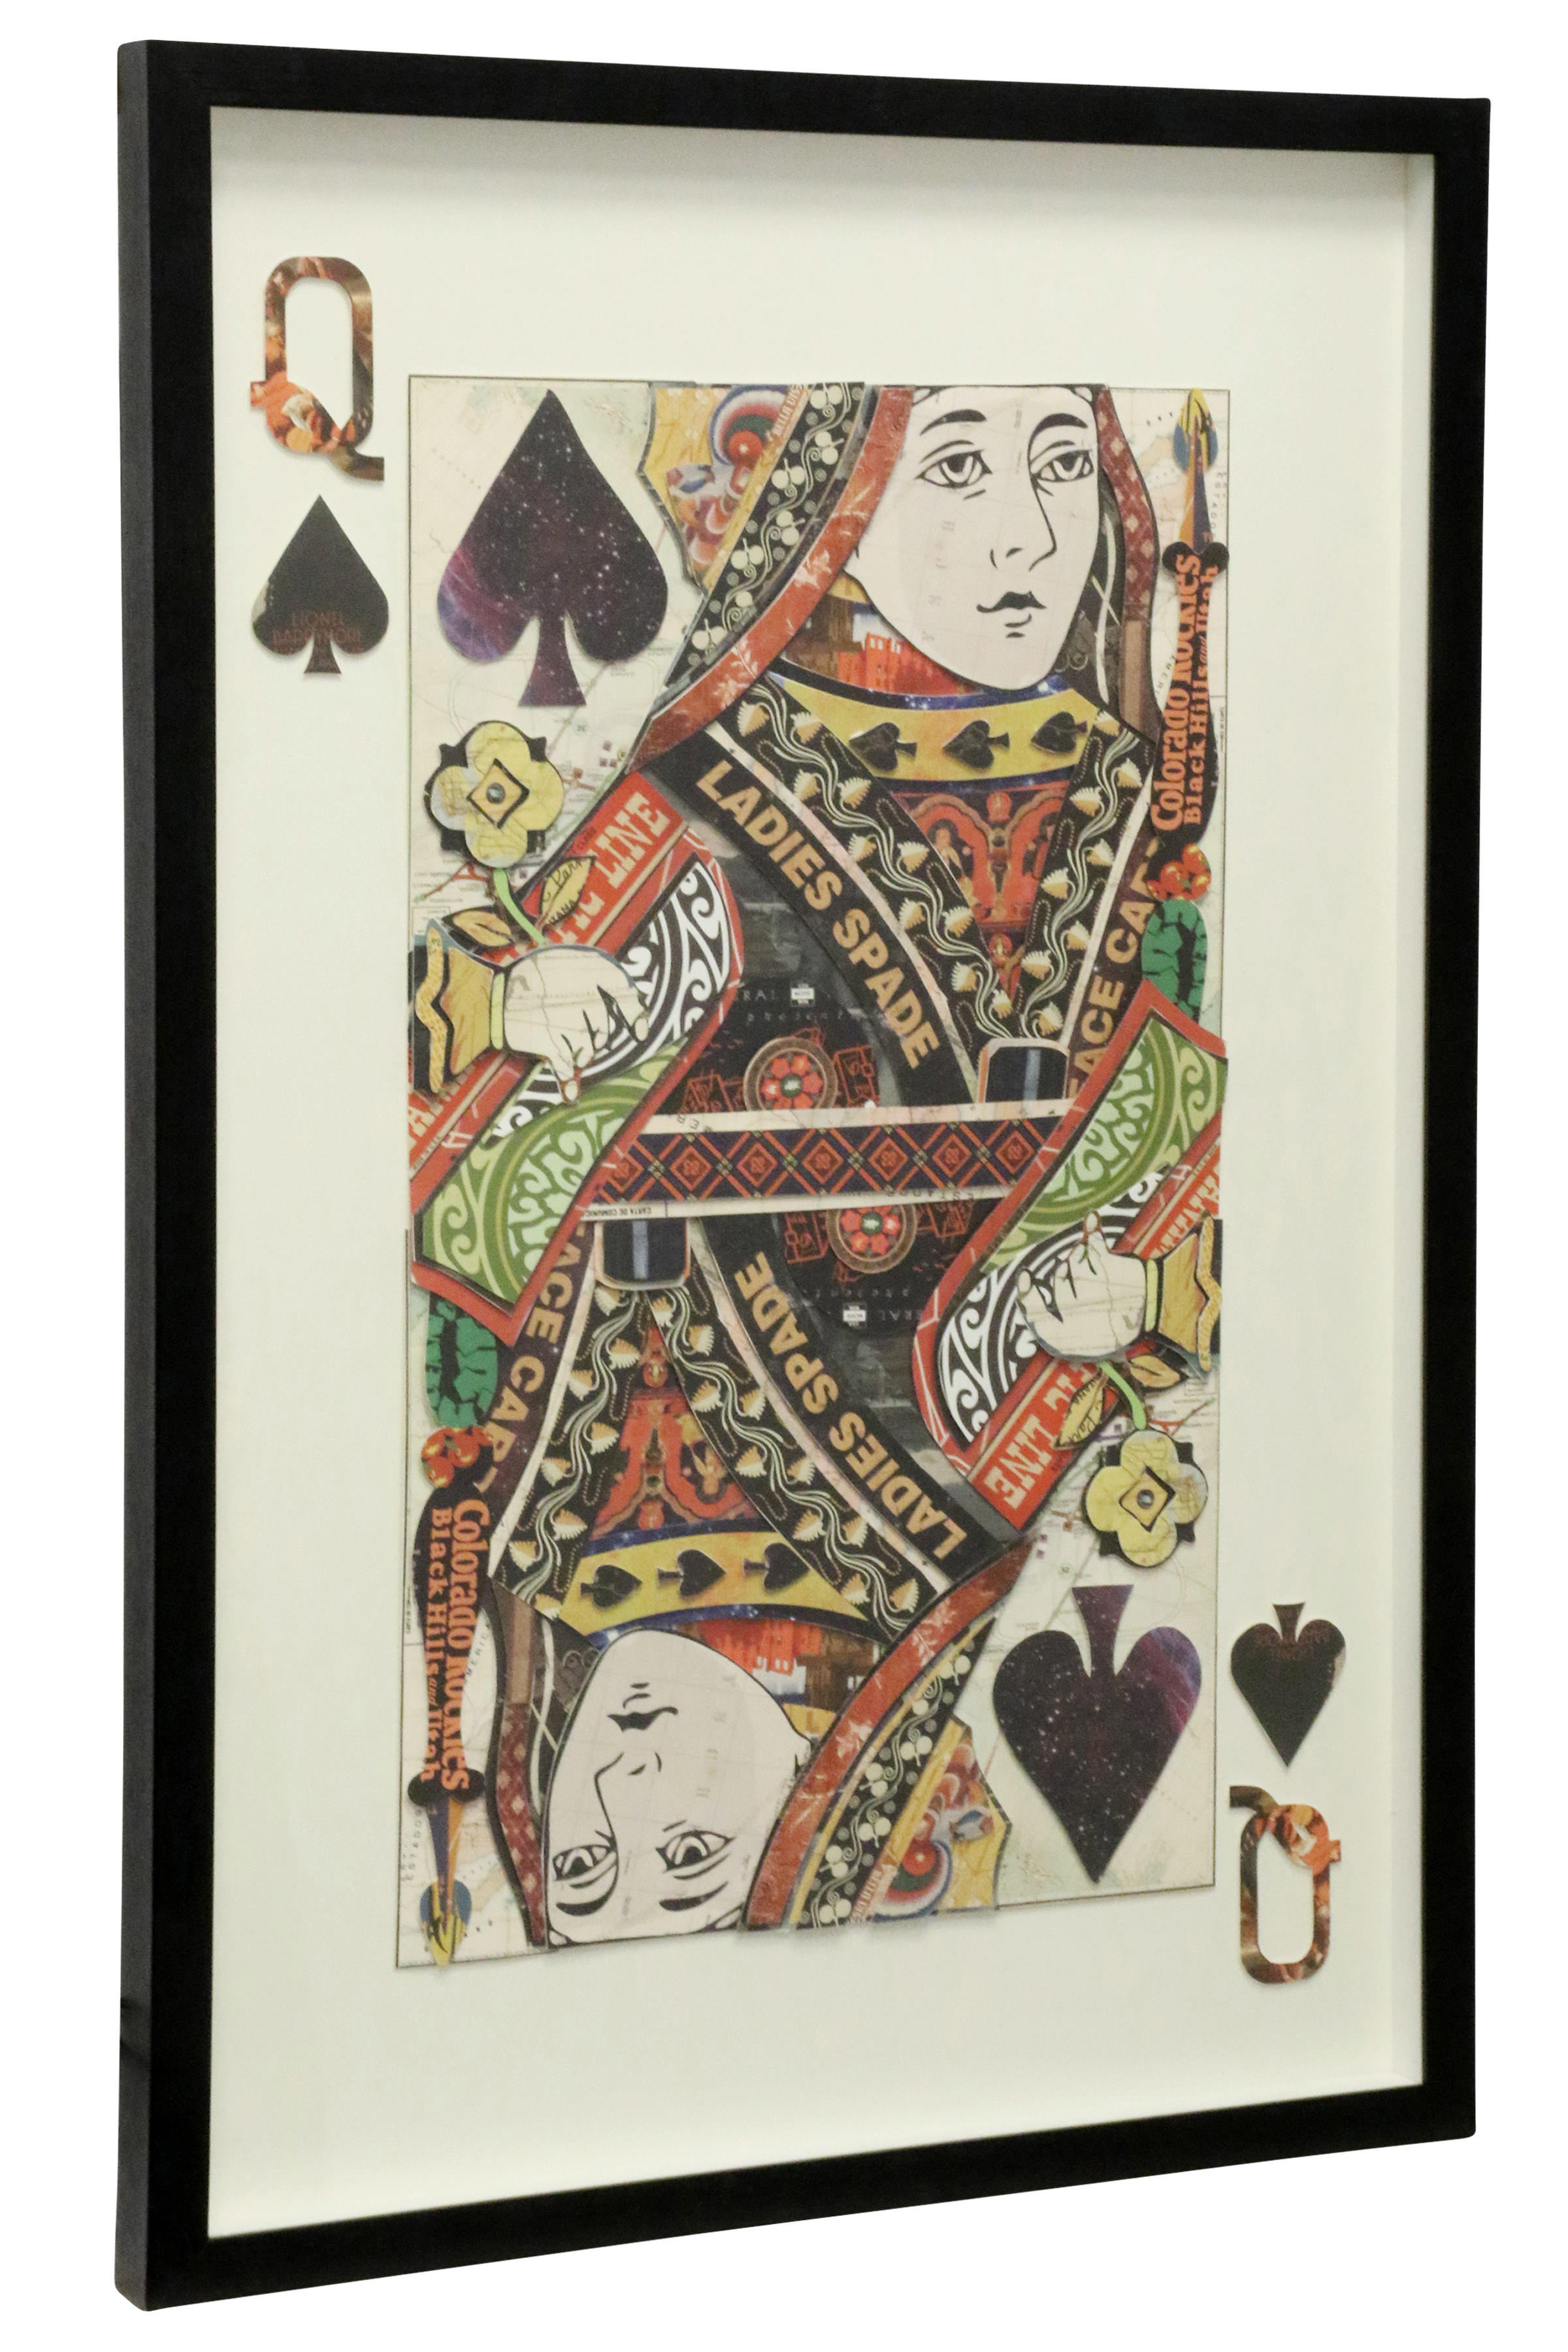 Queen Of Spades Multi Level Framed Wall Artwork by Stylecraft